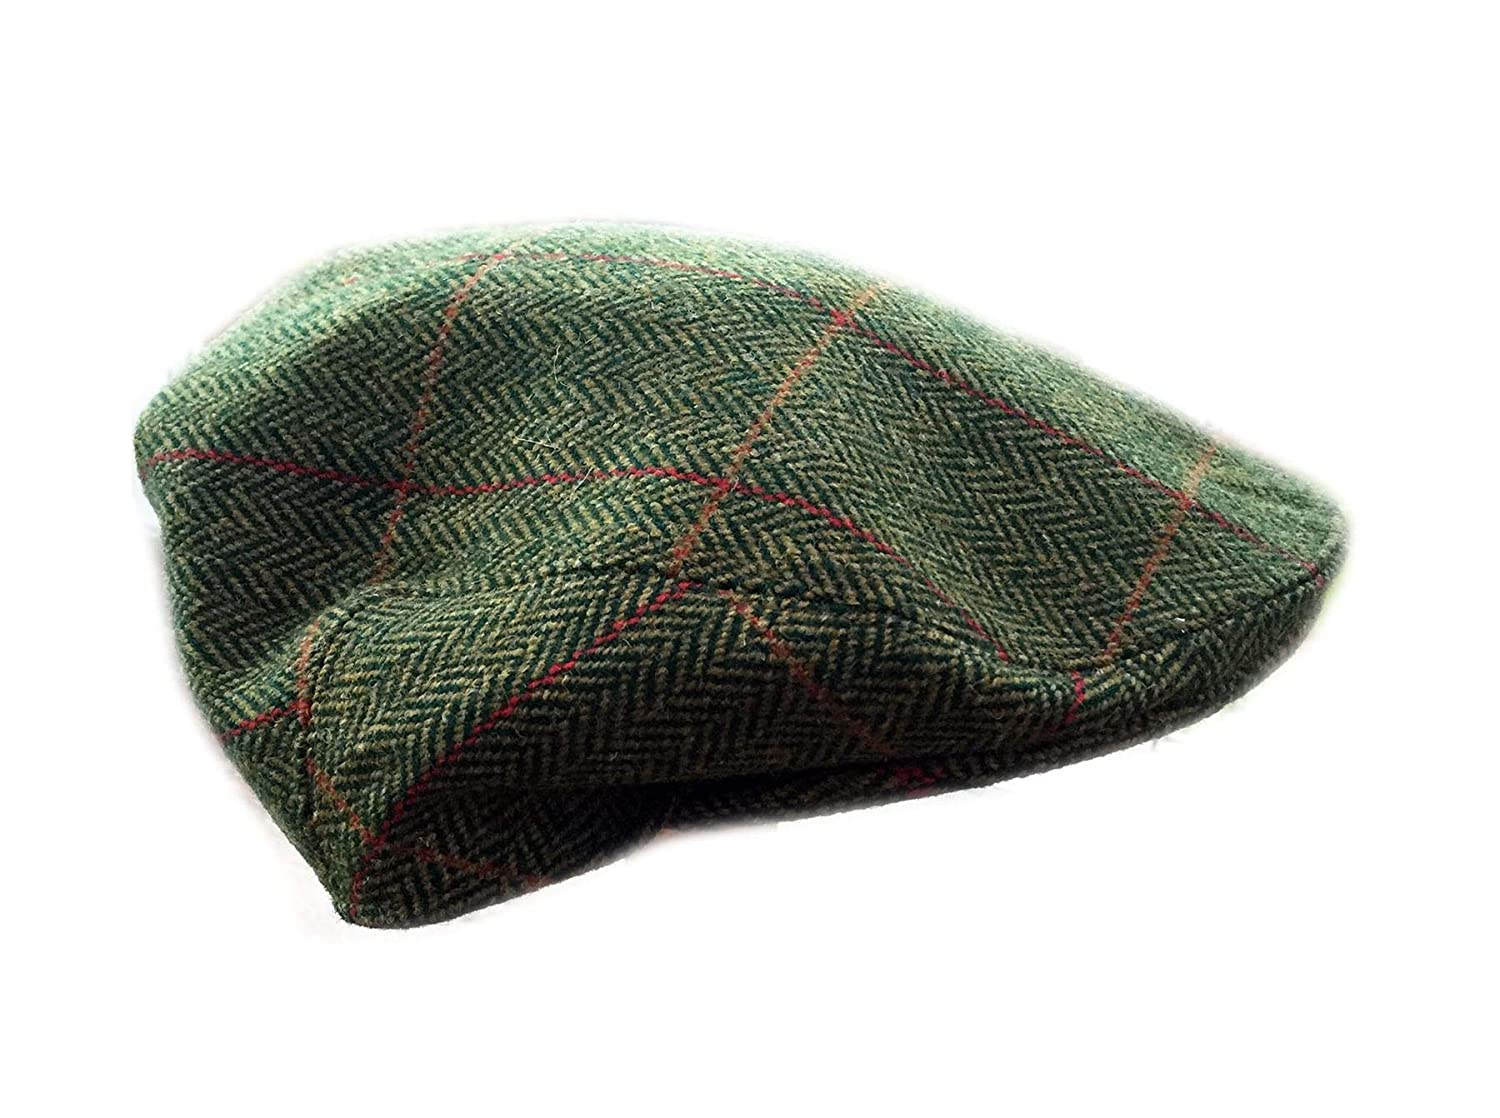 2e751f0e64053 Lawrence   Foster Ltd Hand Tailored Tweed Garforth Flat Cap Loxley Green  Herringbone British Made  Amazon.co.uk  Clothing